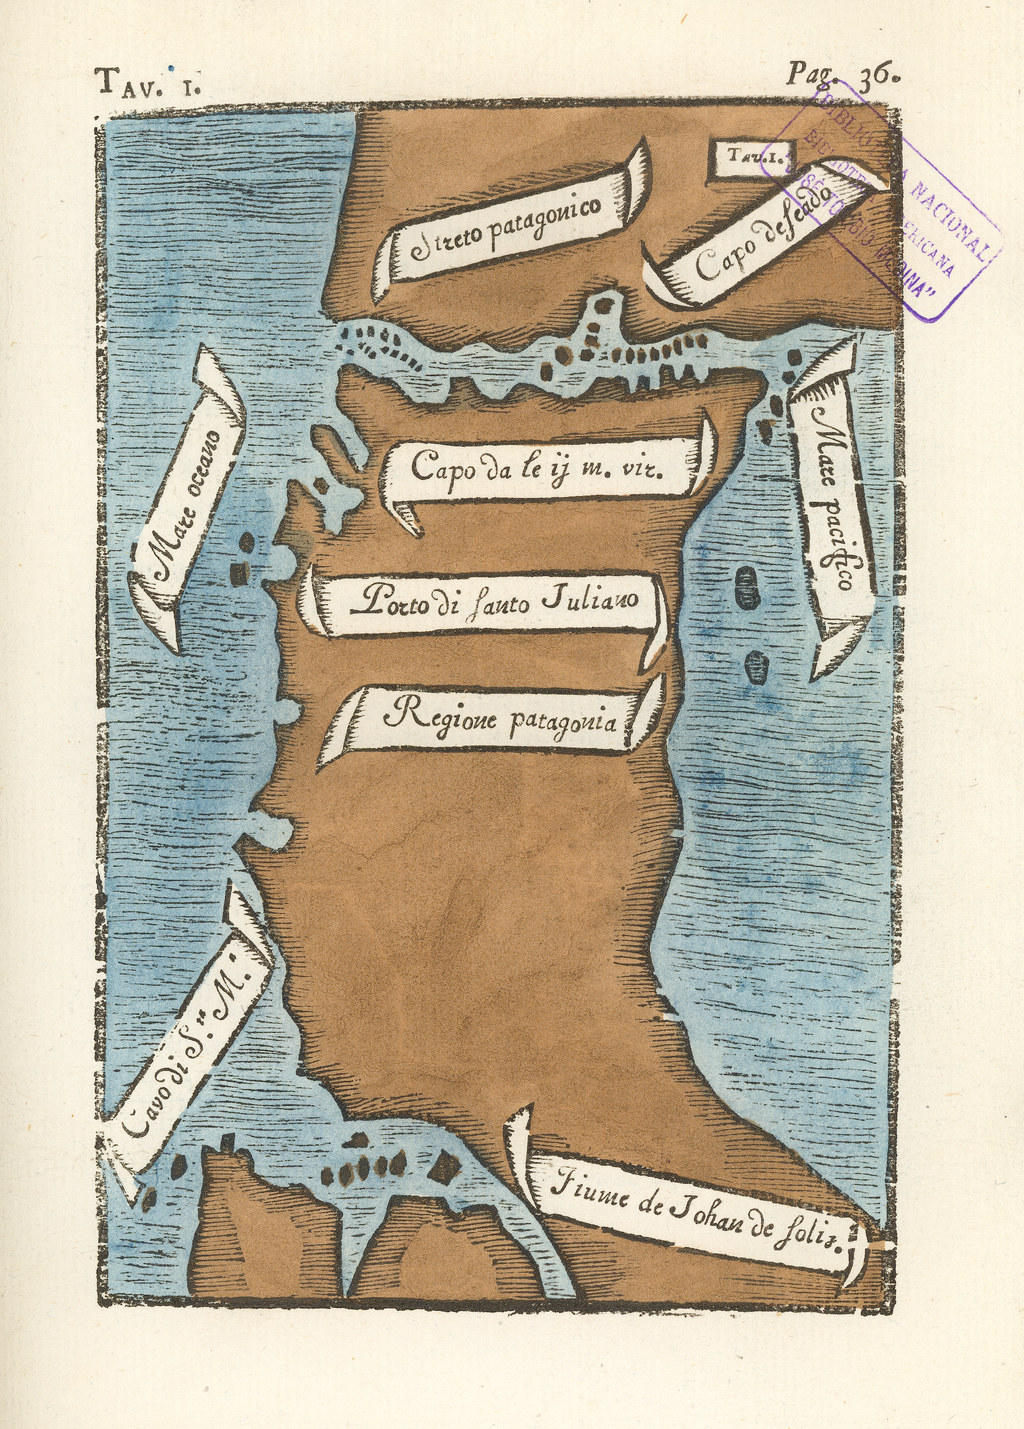 """""""The First Map of the Strait of Magellan, 1520"""" from The Journal of Magellan's Voyage. Available at the World Digital Library at http://www.wdl.org/en/item/3972/"""